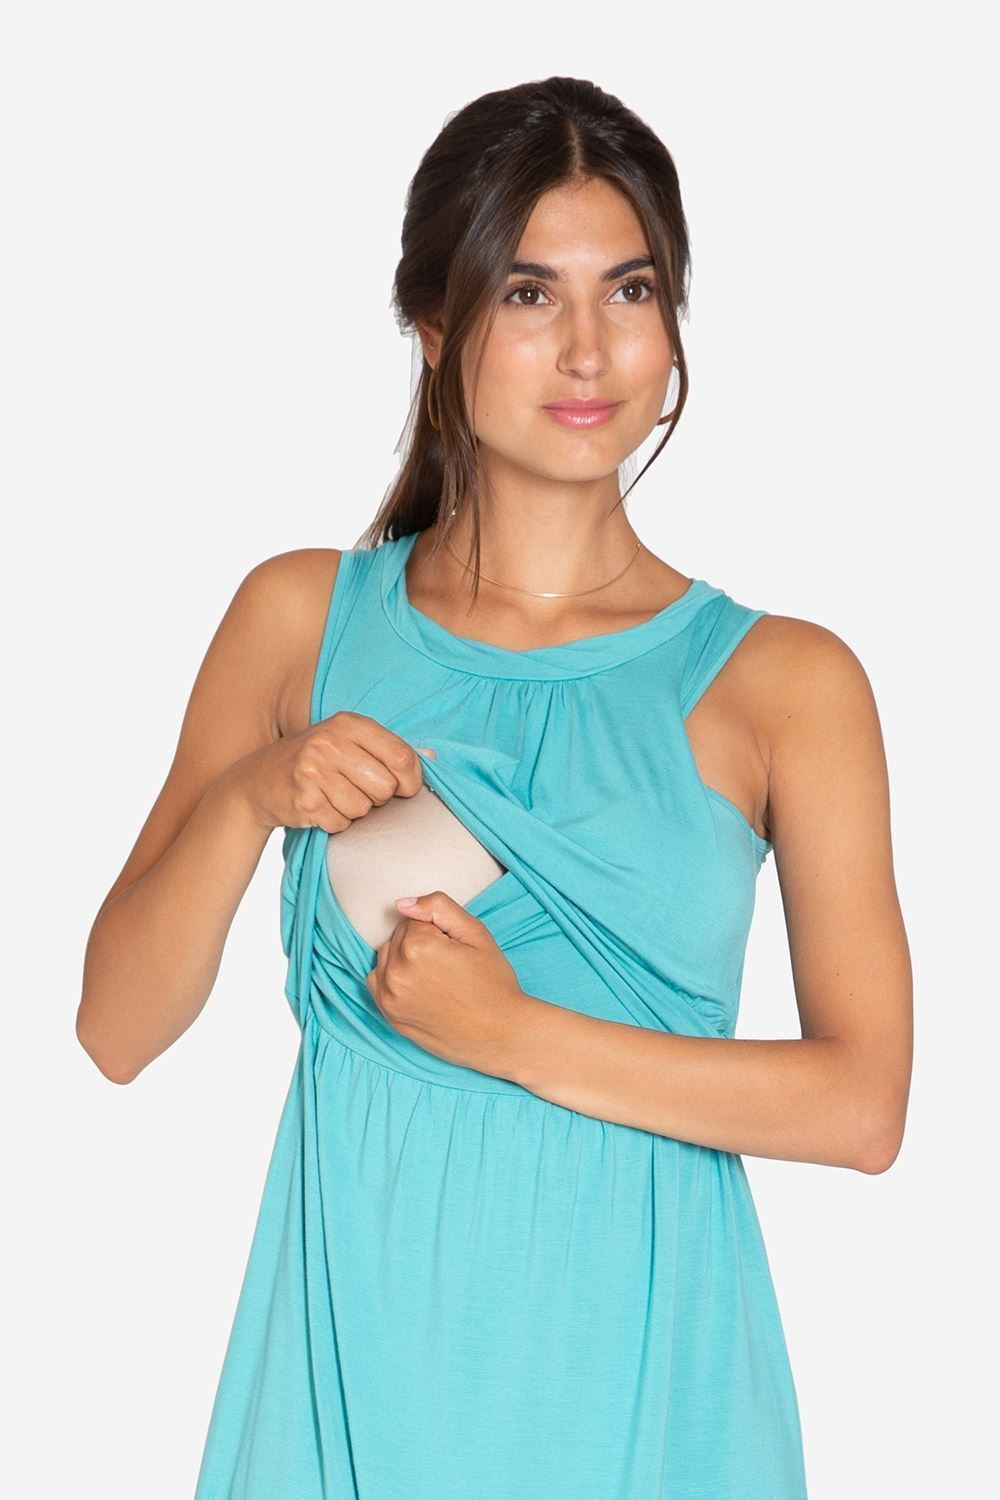 Turquoise Green sleeveless nursing dress – knee-length in bamboo fibers - access for nursing